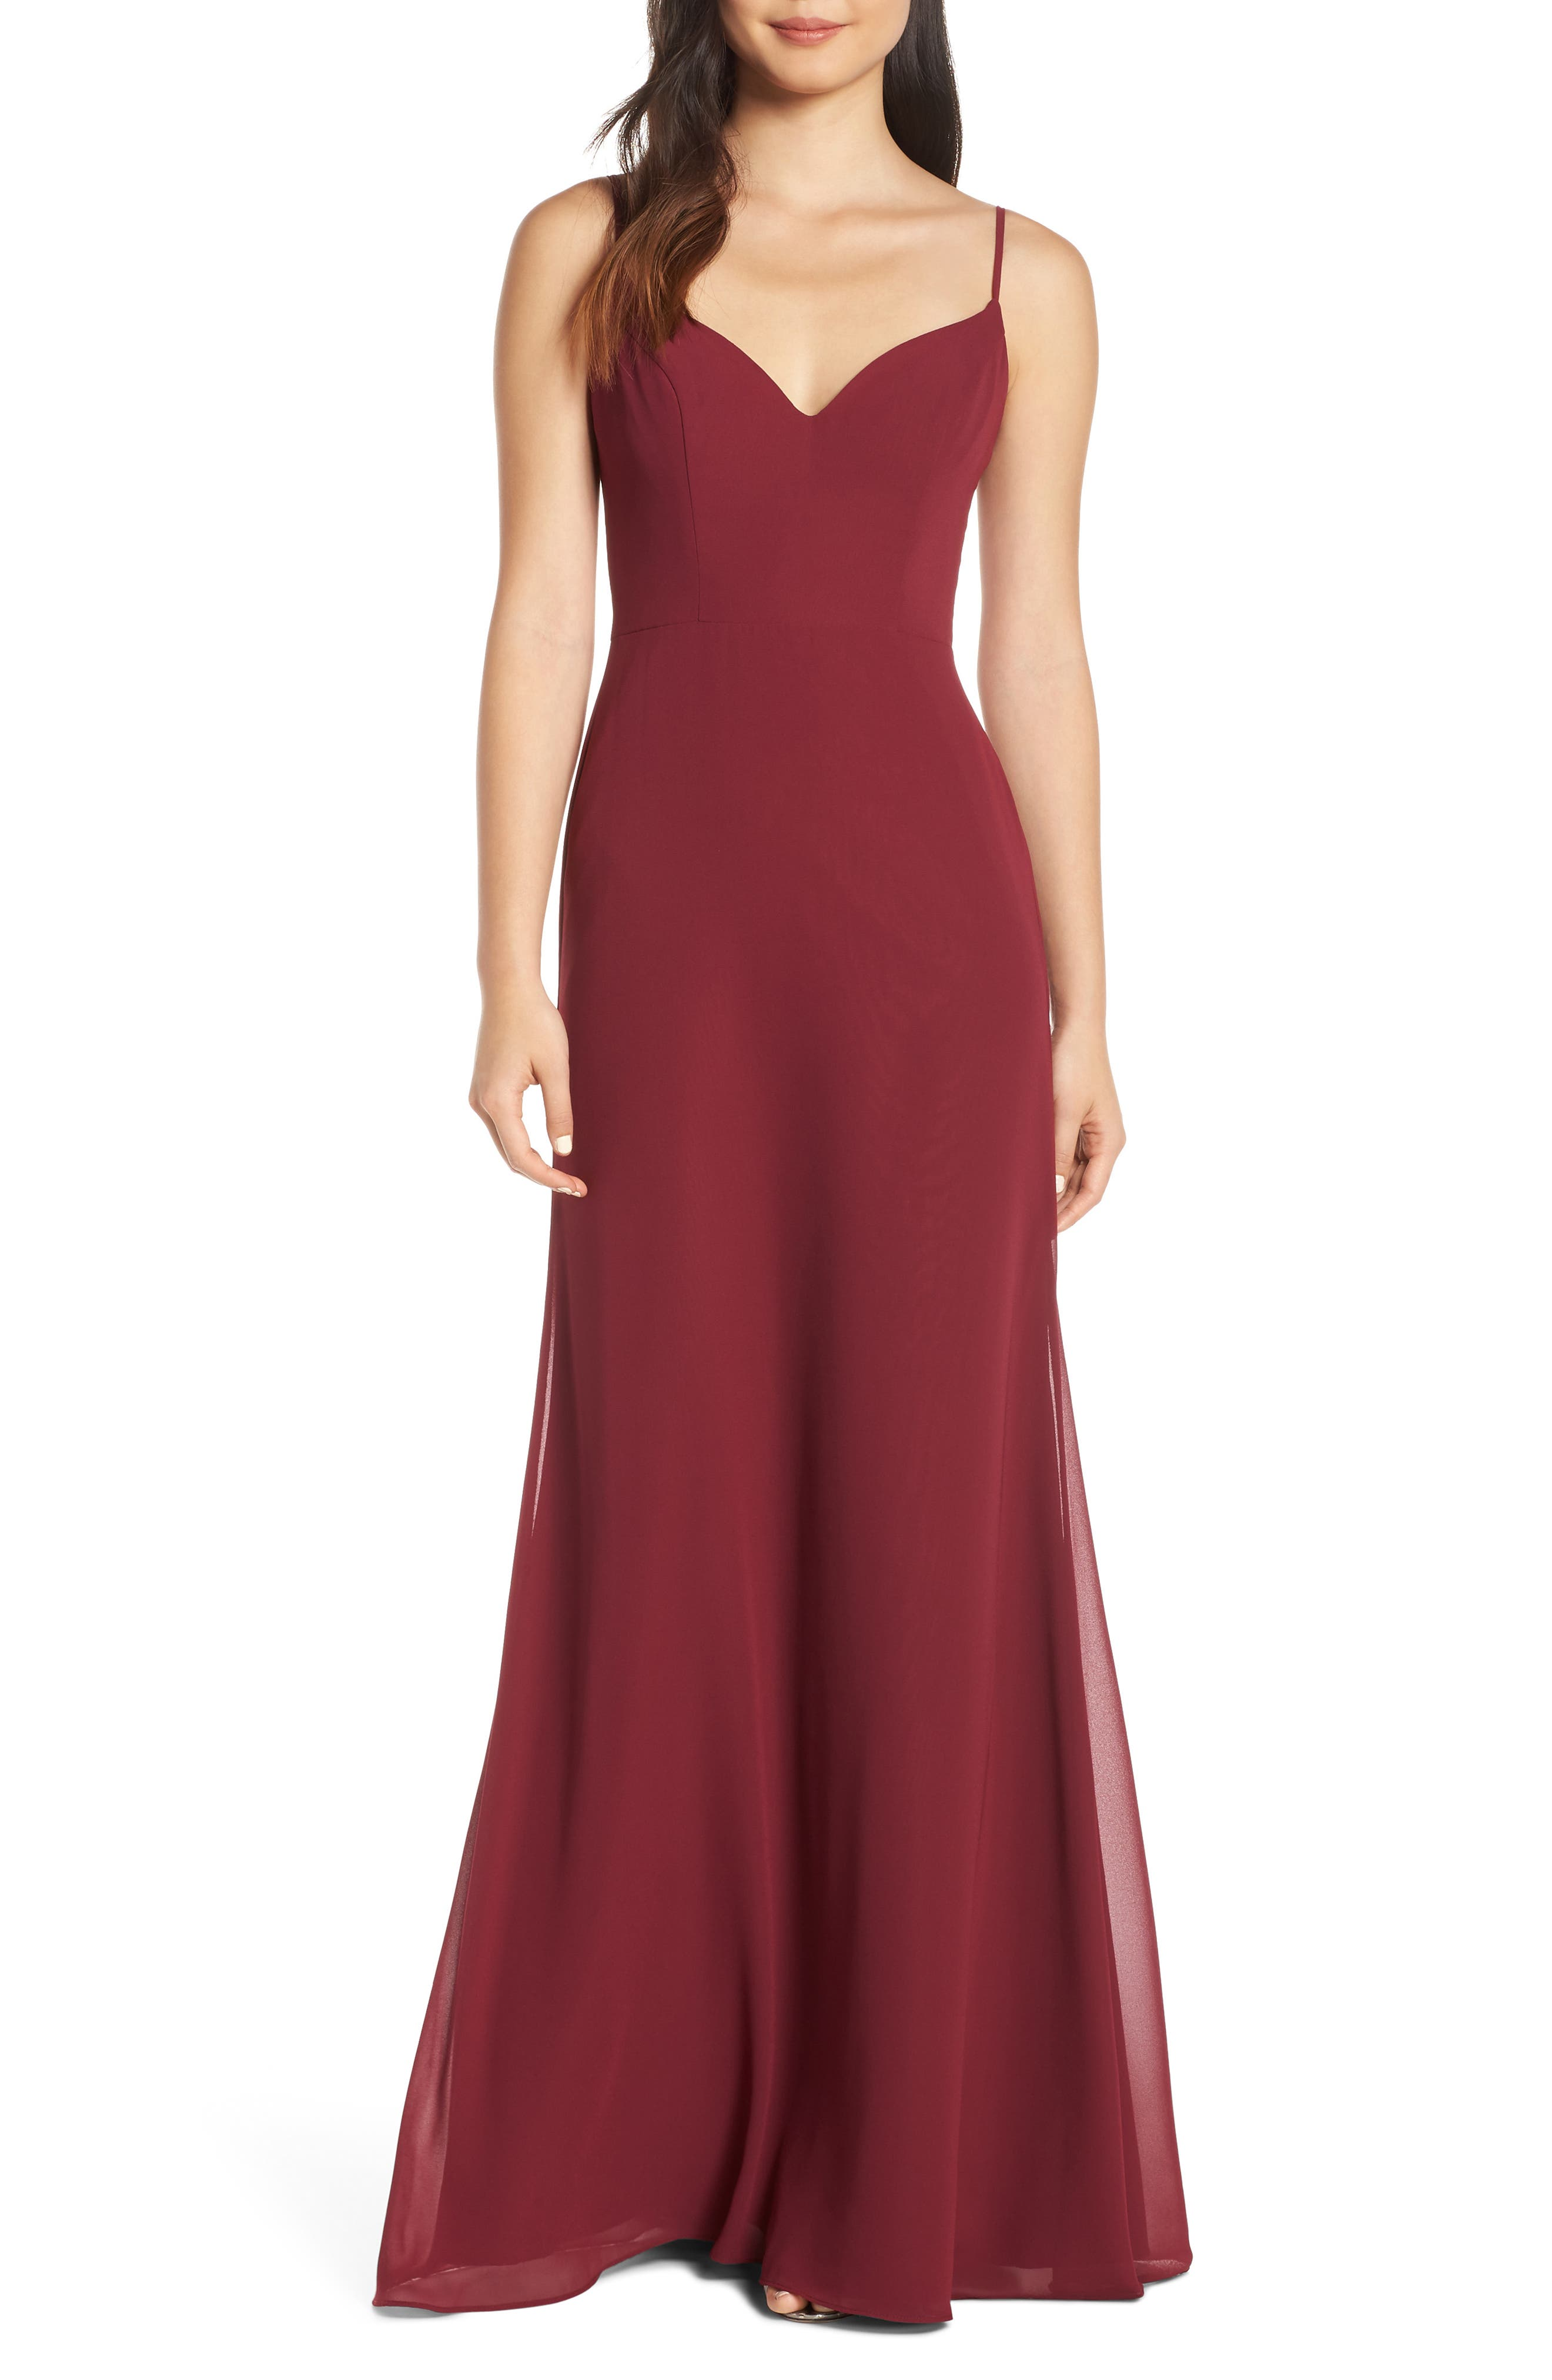 Hayley Paige Occasions V-Neck Chiffon Evening Dress, Burgundy